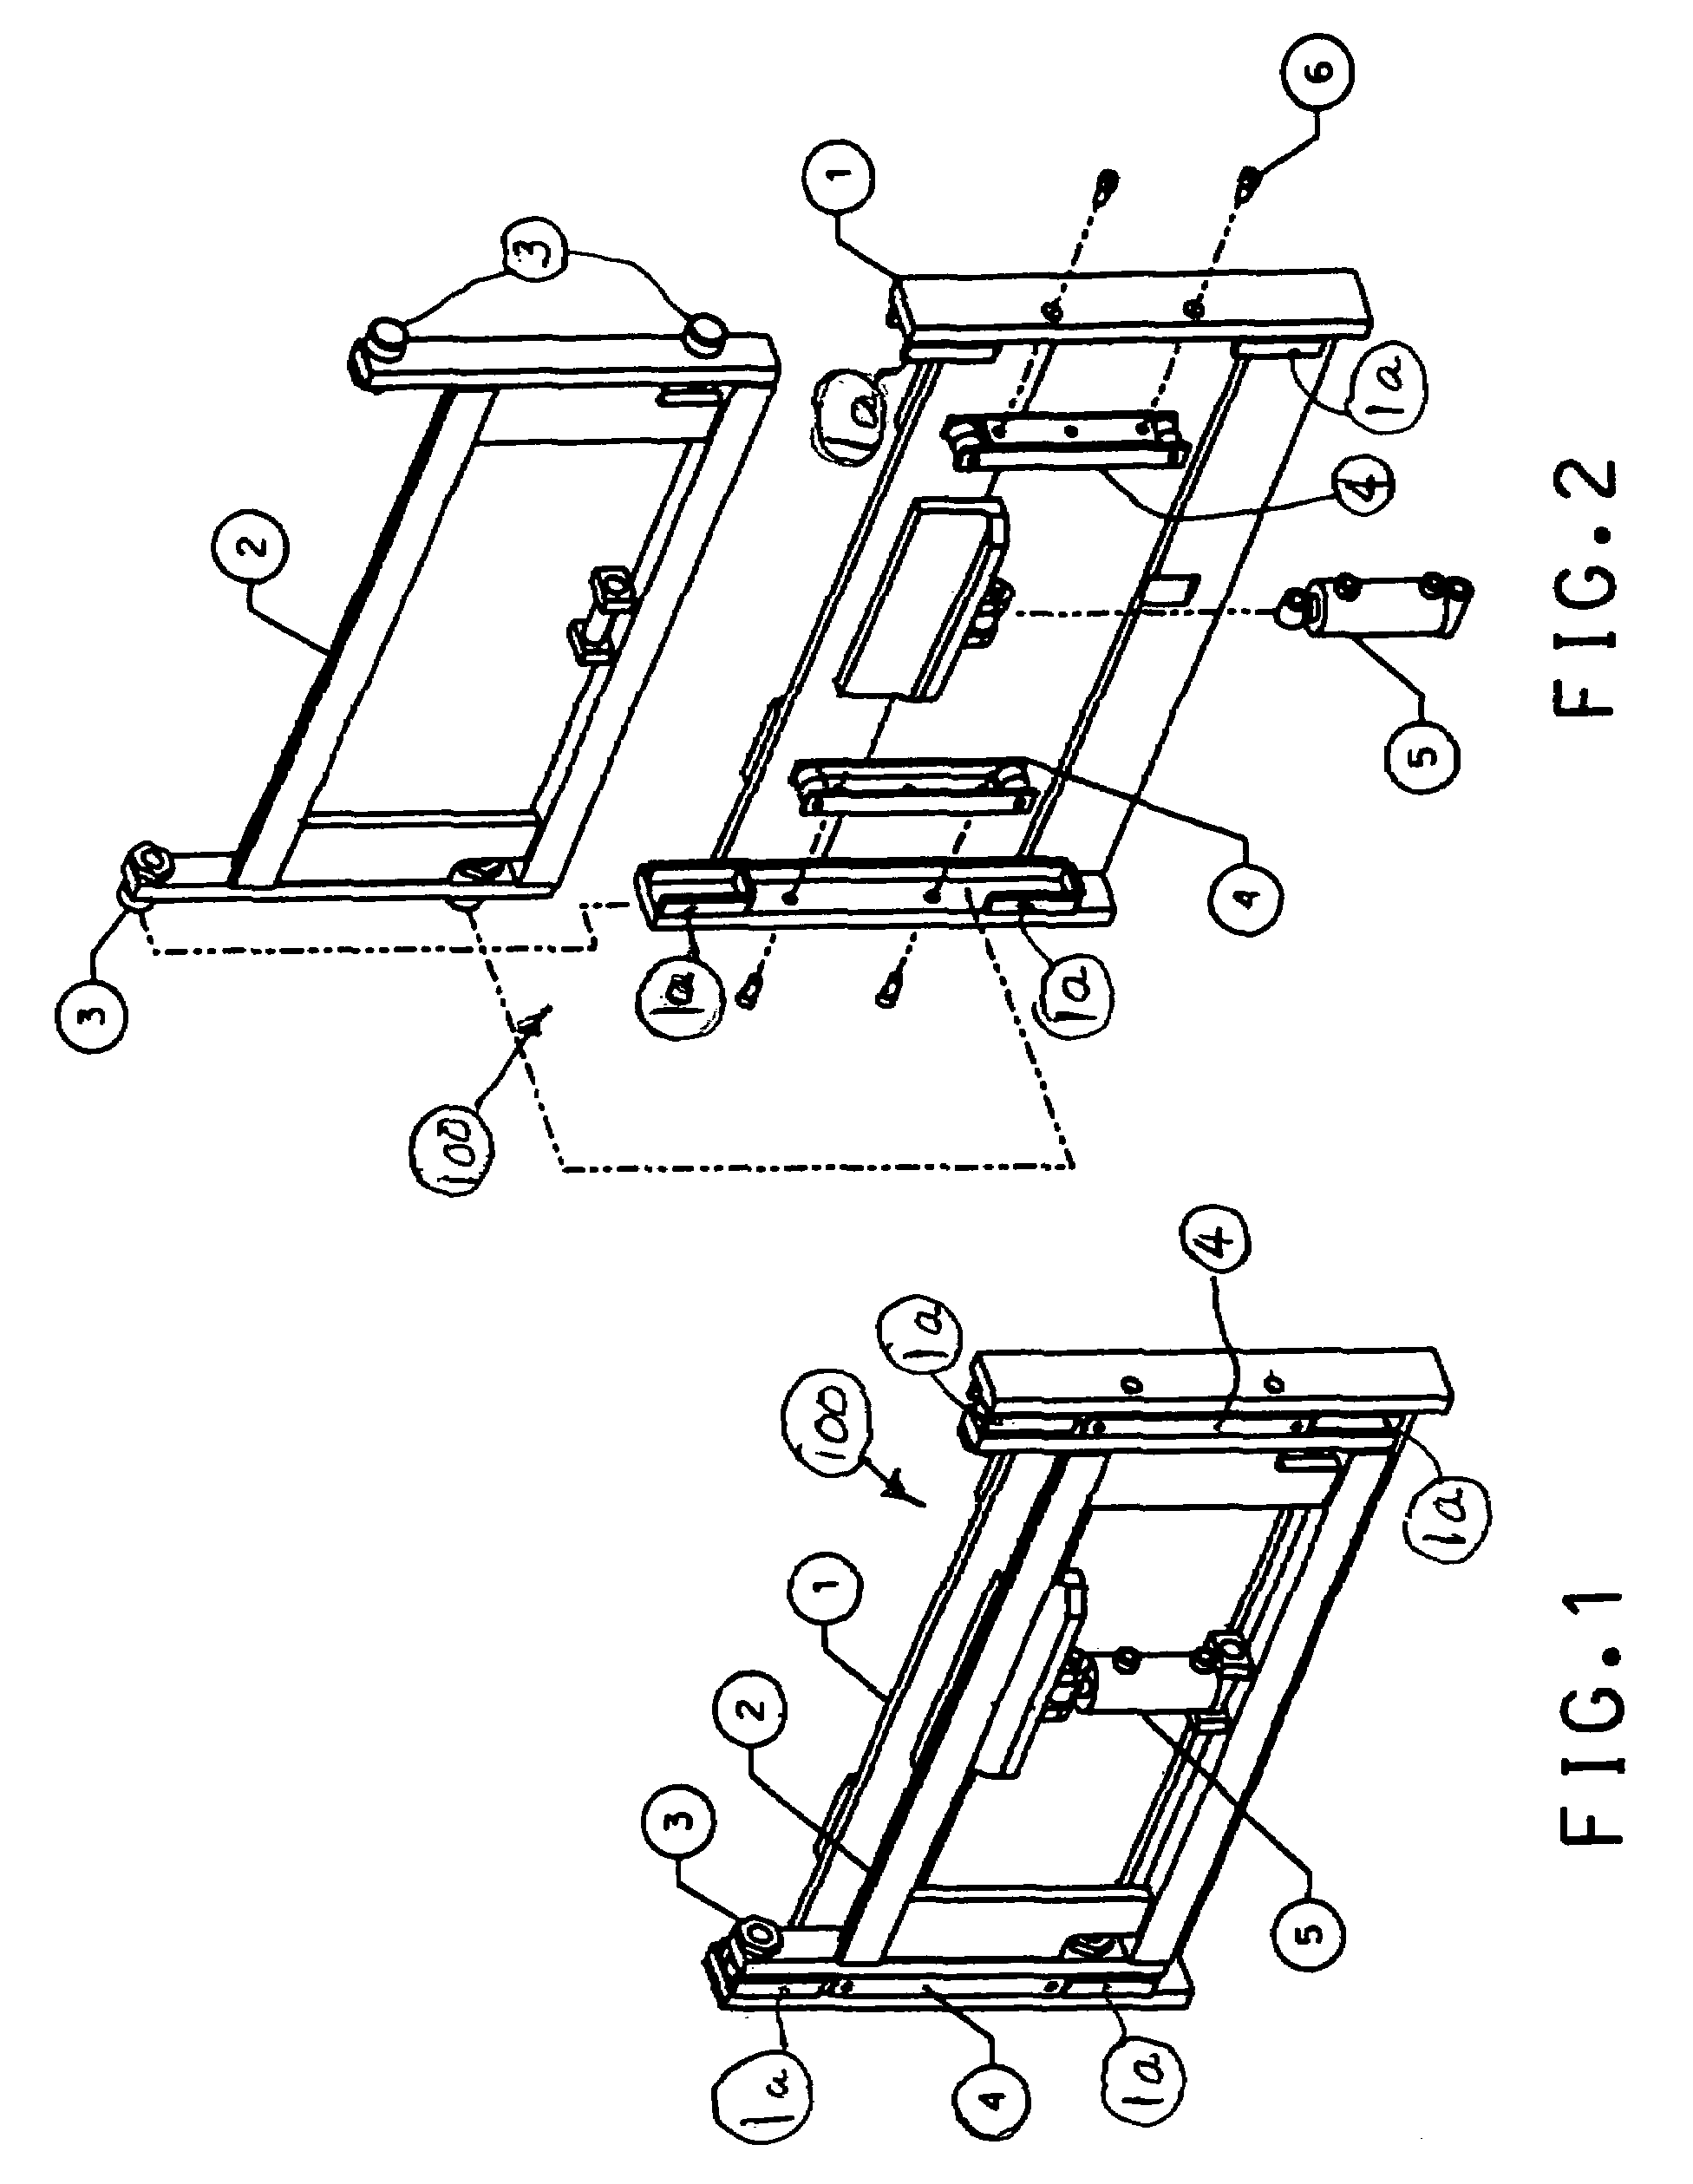 patent us7412919 - hydraulic force control system for clamping assembly